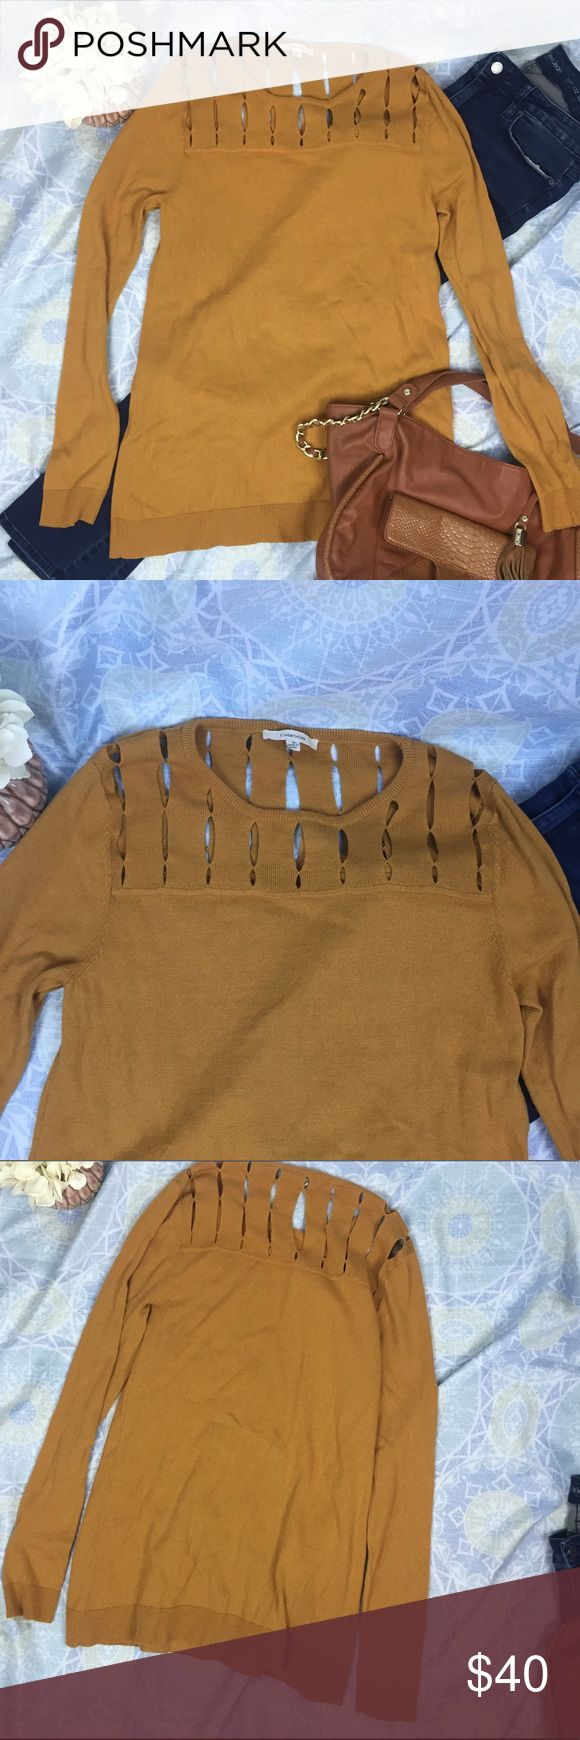 """41Hawthorne Stitch Fix Sweater Cutout Detail Beautiful, unique mustard yellow sweater with cutout detail on shoulders and upper chest and back. Excellent used condition - minimal signs of wash. Cotton/Nylon/Wool blend. Measurements: 29"""" shoulder to hem; 36"""" bust; 27"""" sleeve Sweaters"""